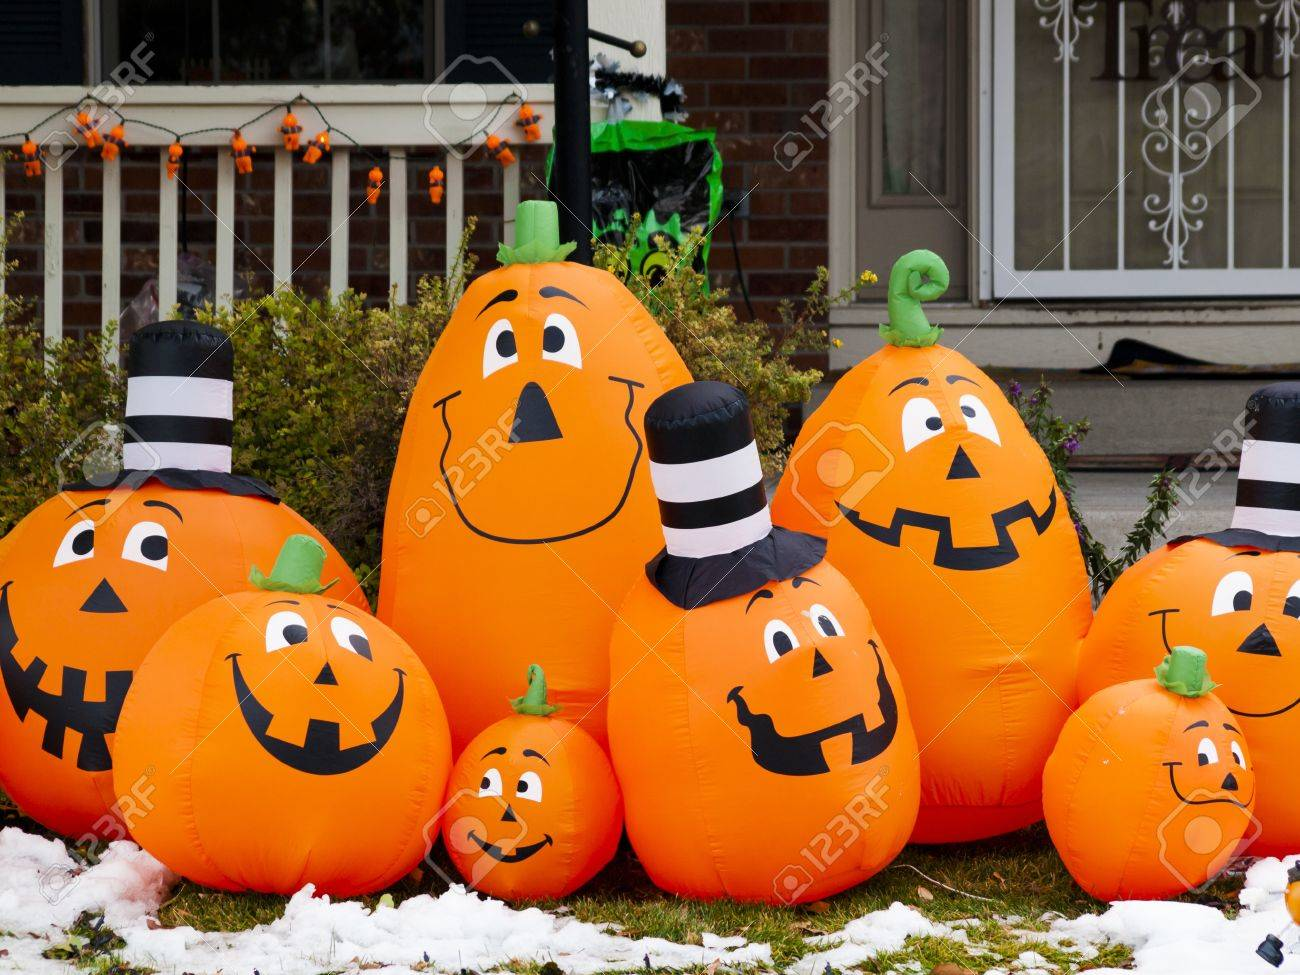 halloween decorations in the front yard of a house on halloween stock photo 15982376 - Front Yard Halloween Decorations